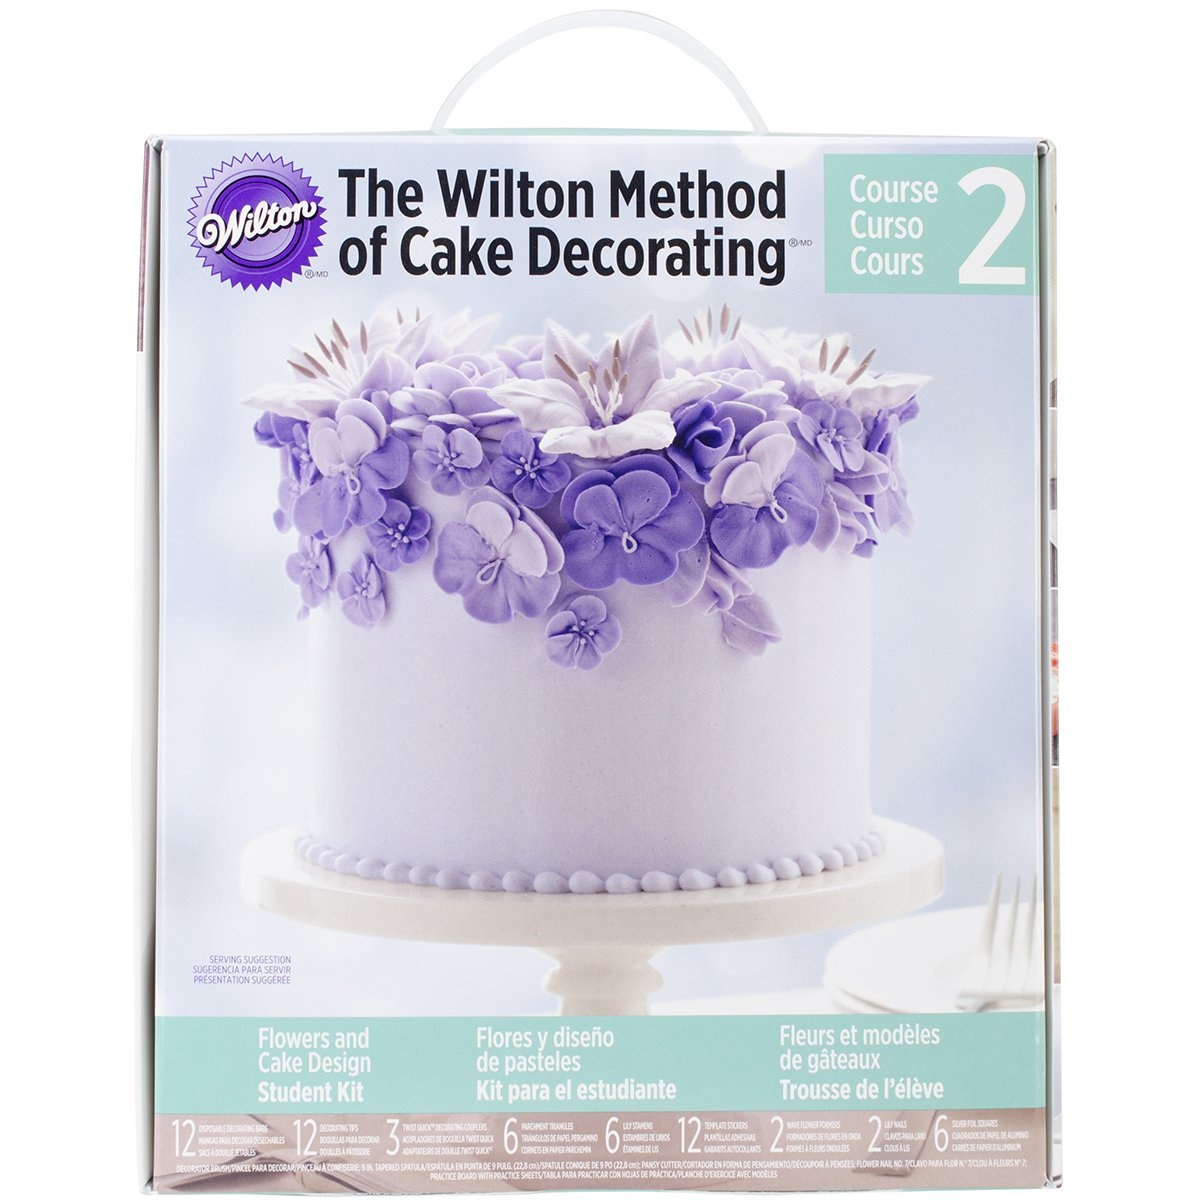 Wilton 2116-2117 Student Kit 2014 Course 2, Multicolored Notions - In Network 94612